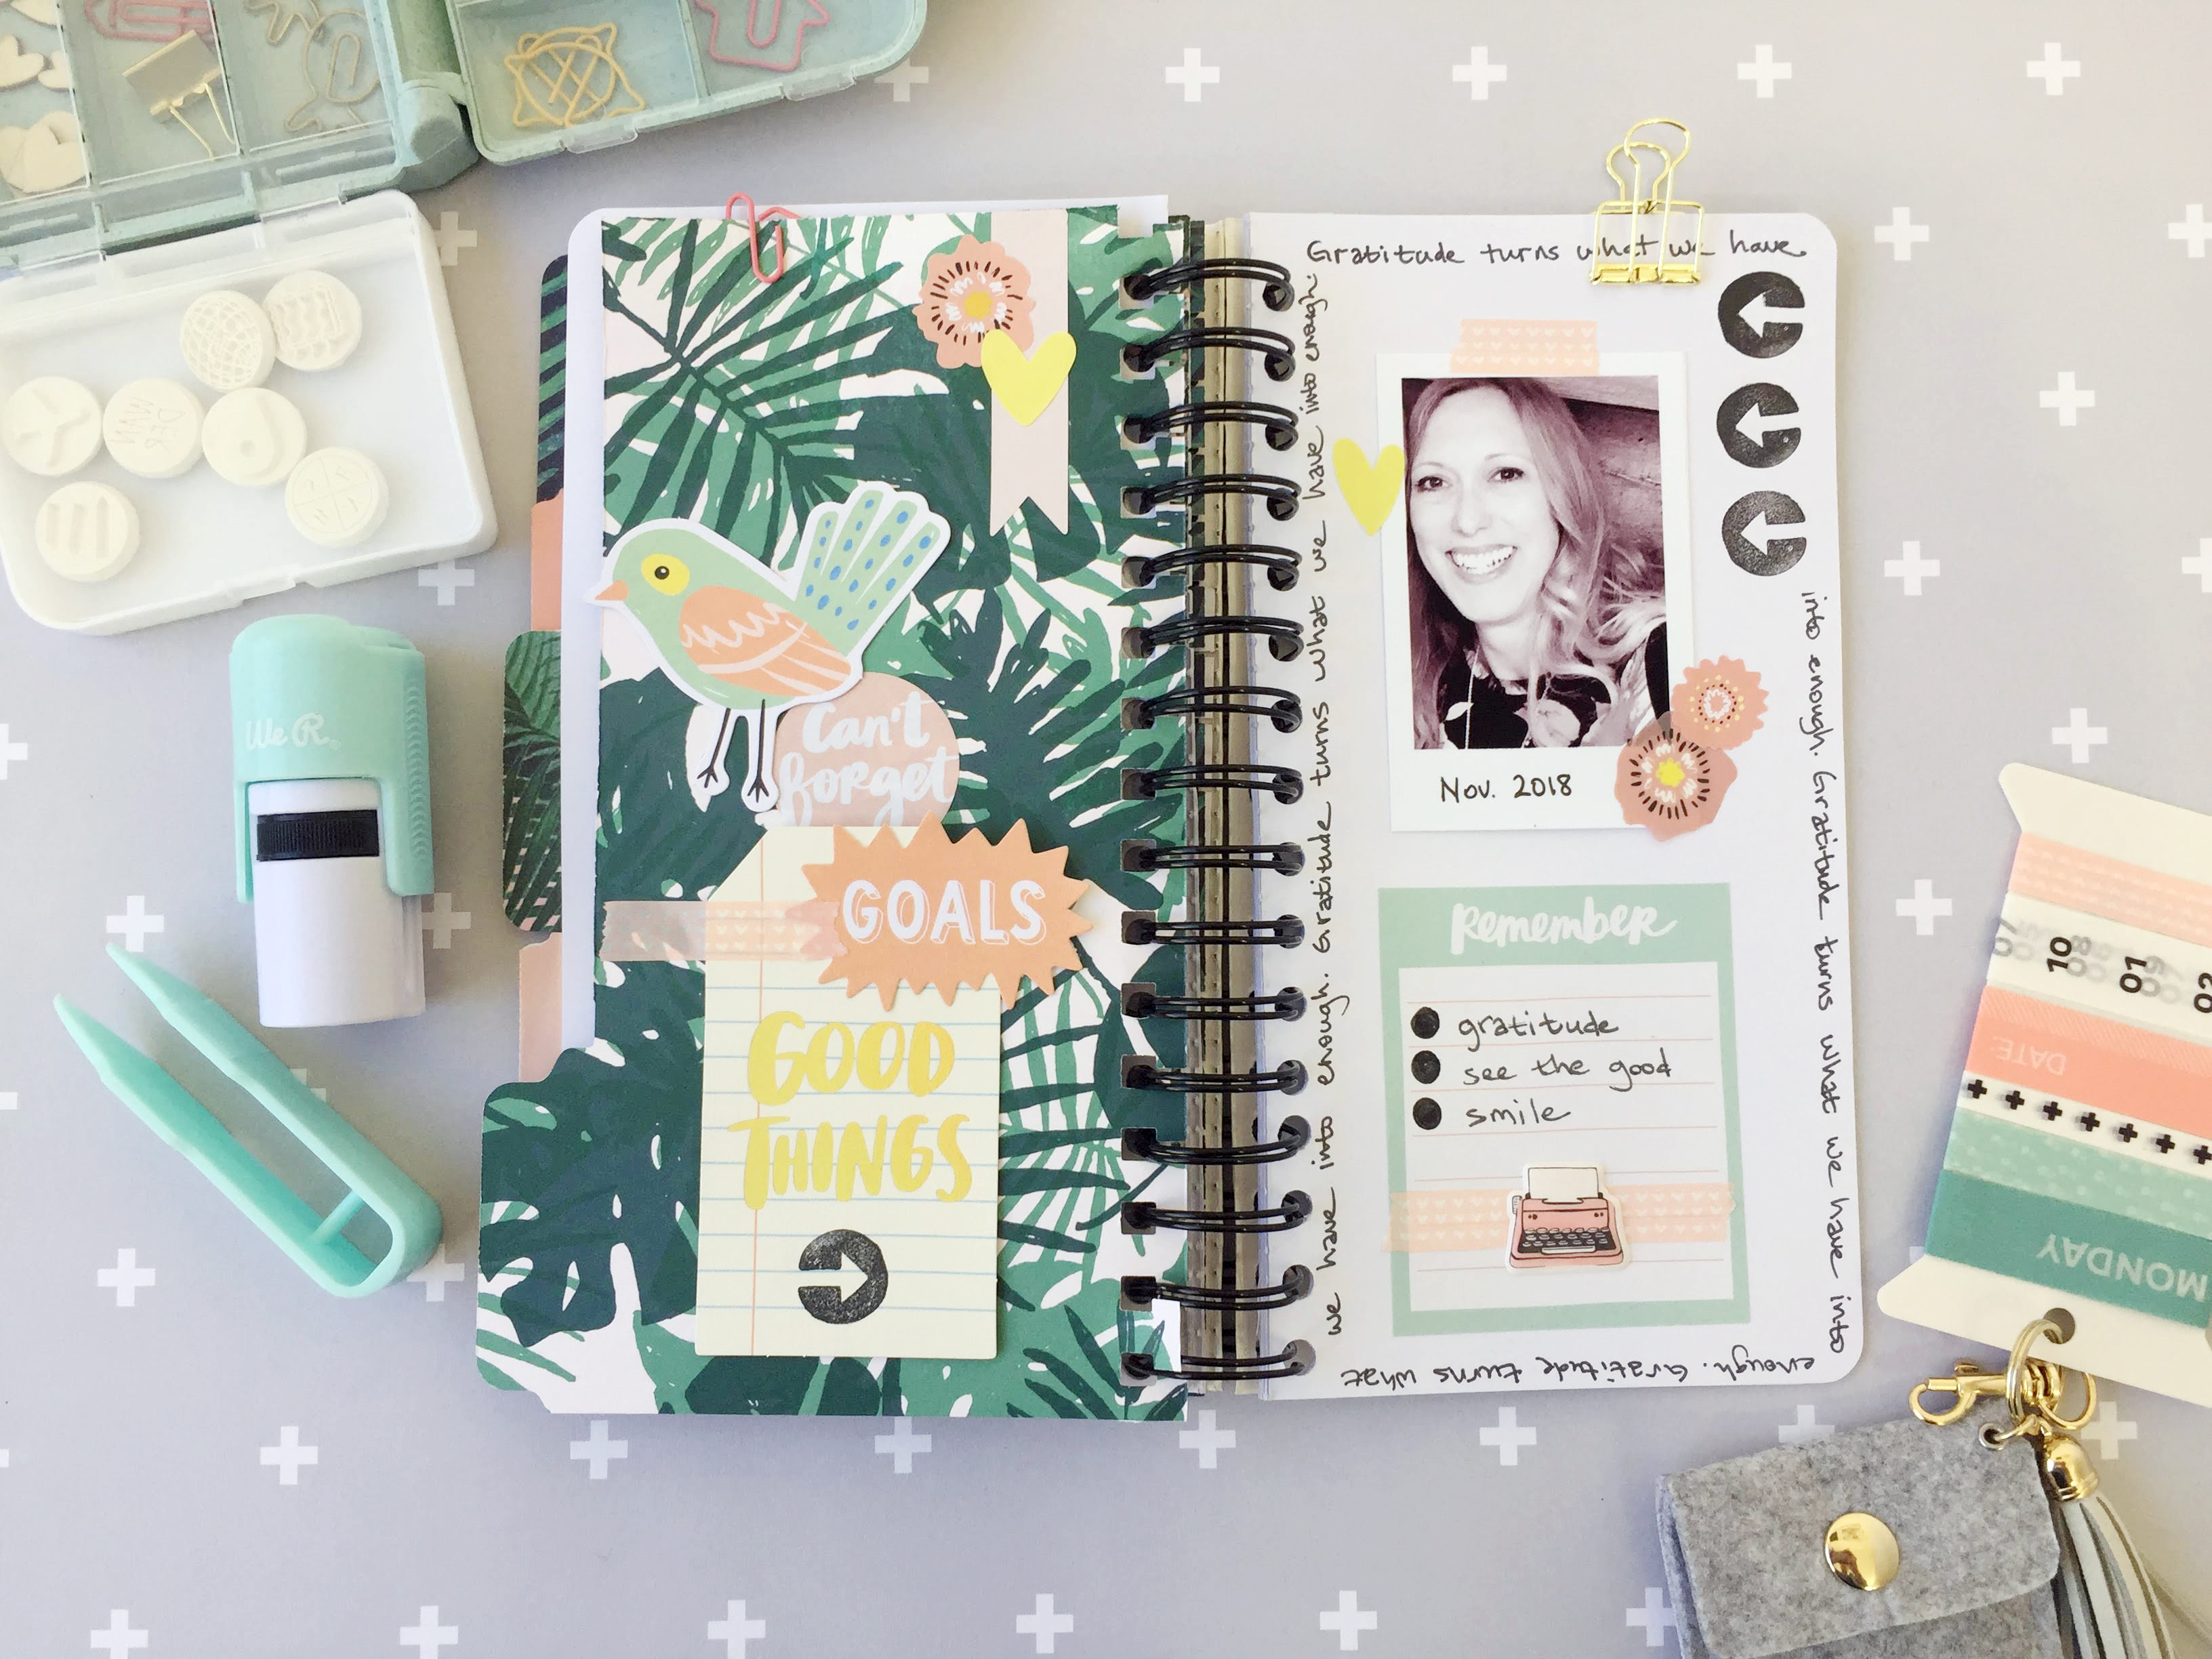 Gratitude Journal by Aly Dosdall for We R Memory Keepers featuring The Cinch, Journal Studio Tools, and Amy Tangerine Journal Studio collection